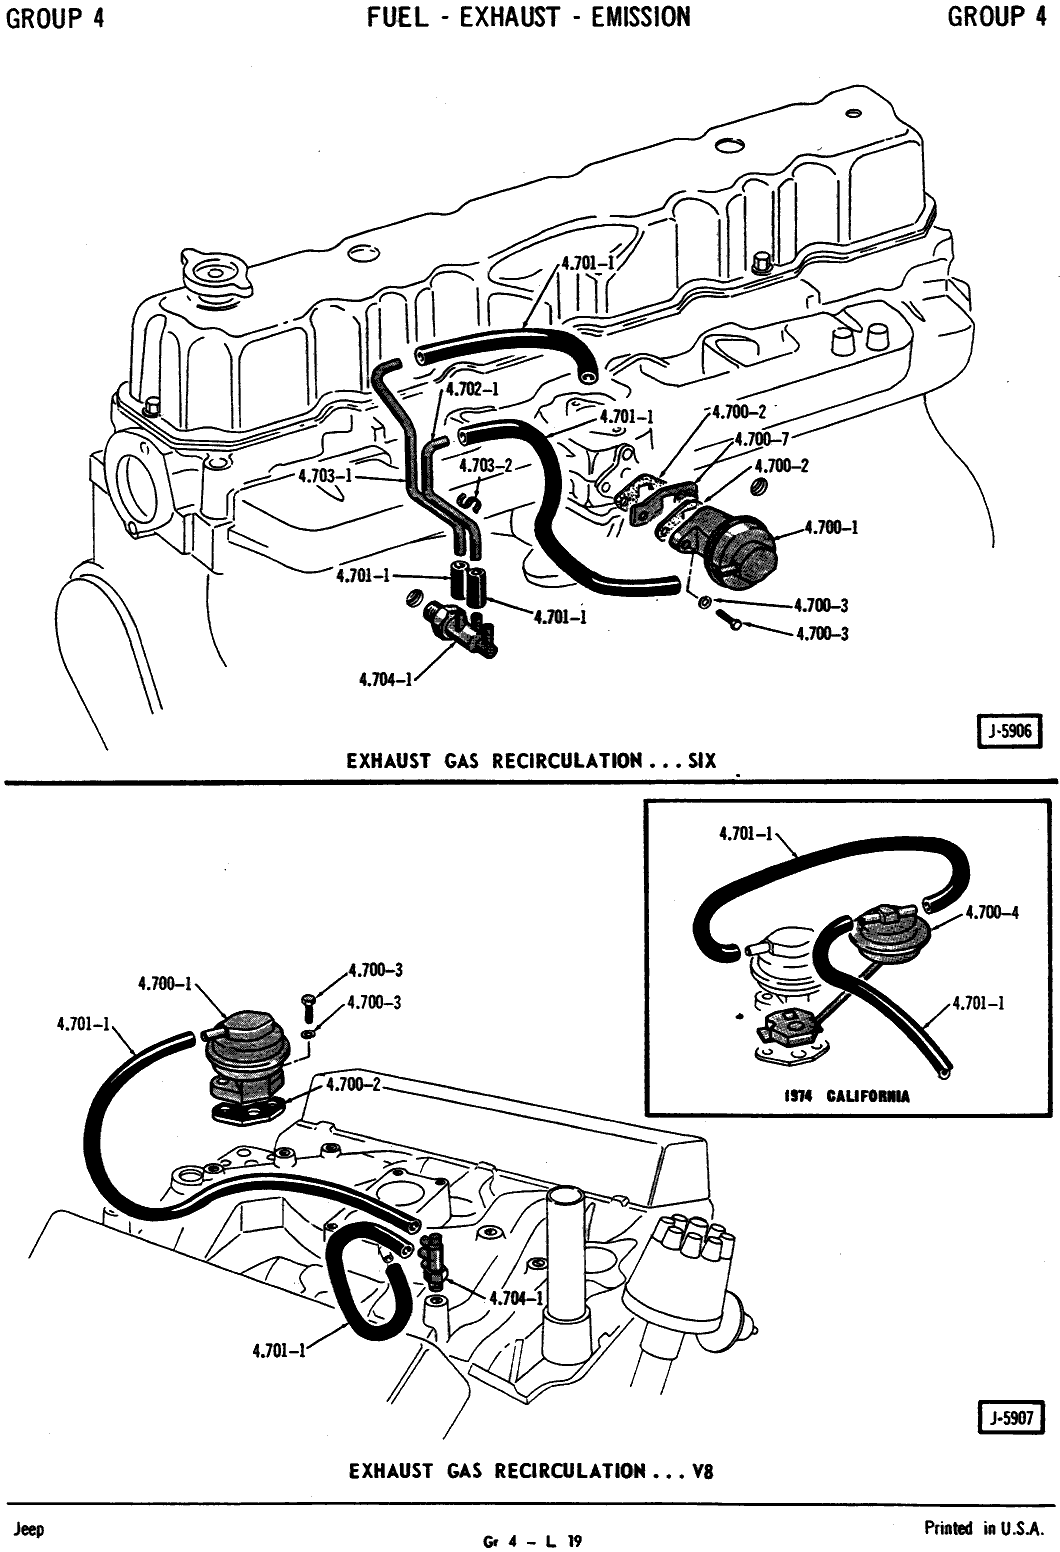 jeep wrangler engine diagram jeep 5 2 engine diagram jeep wiring diagrams